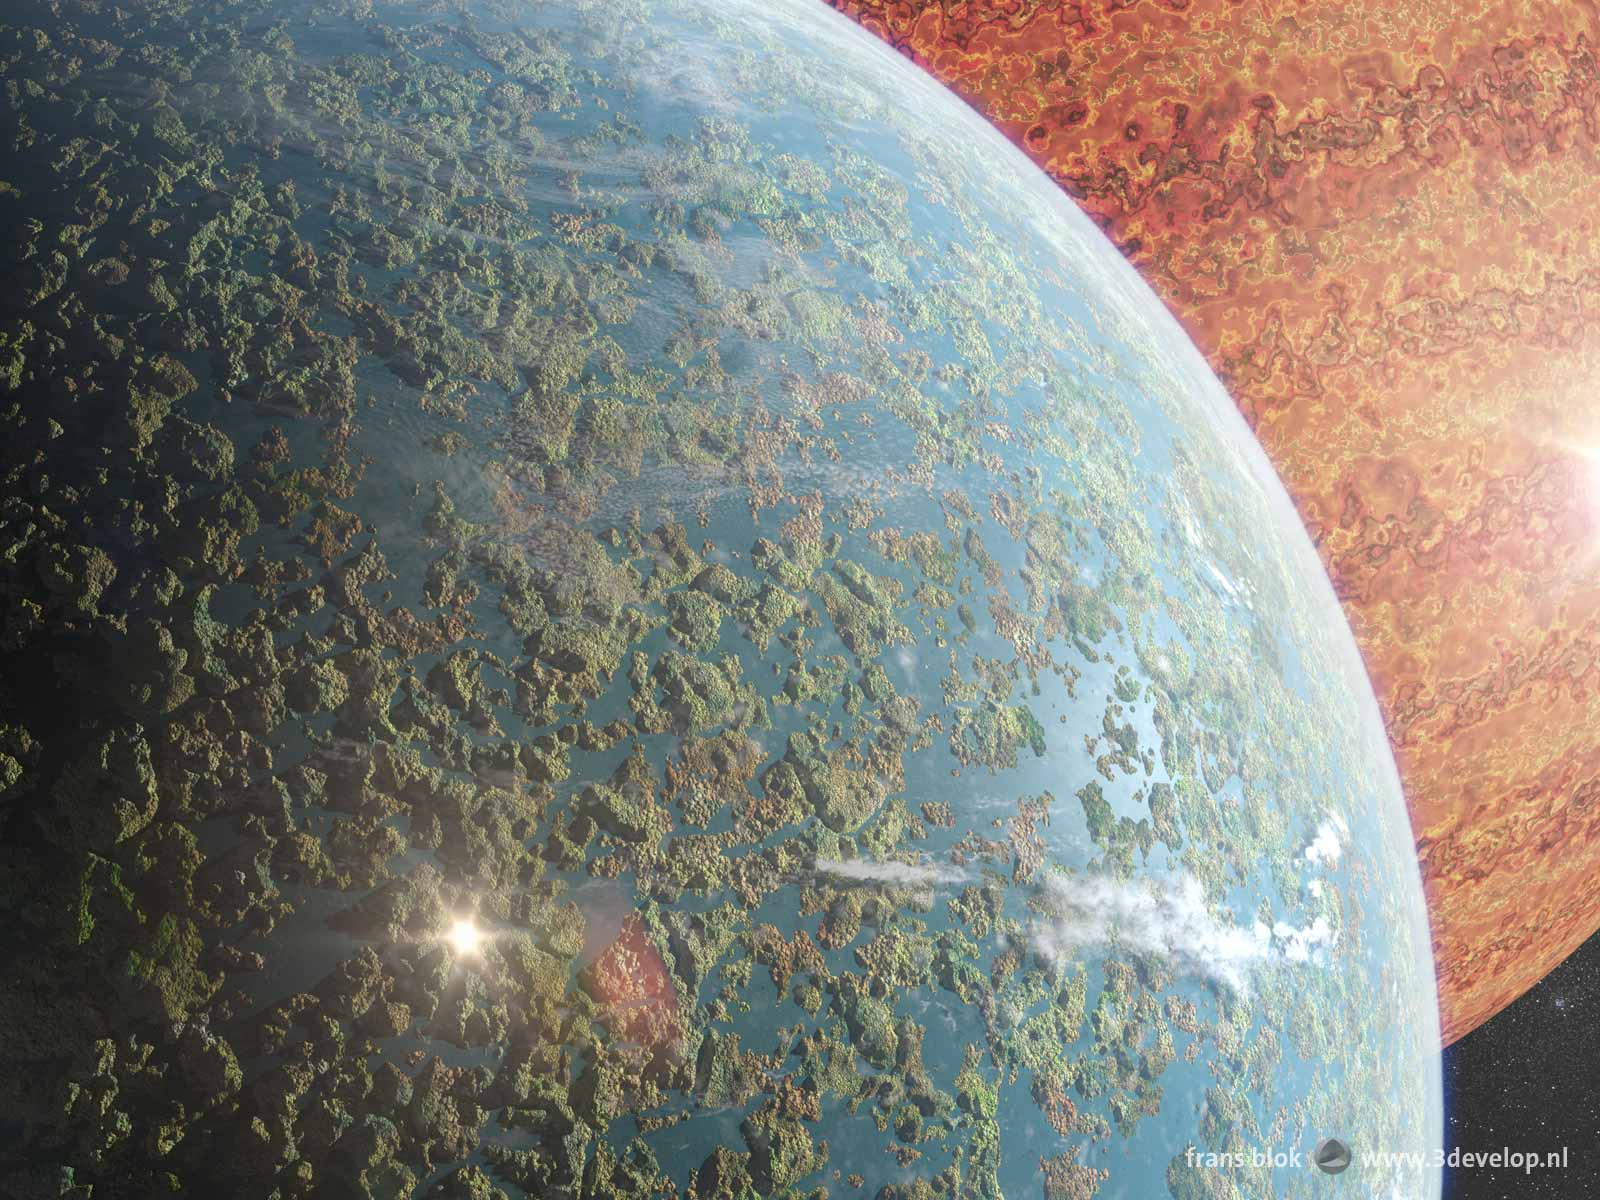 Space art, showing the Earth-like planet Alice with a remarkable landscape full of islands and lakes and in the background gas giant Goliath